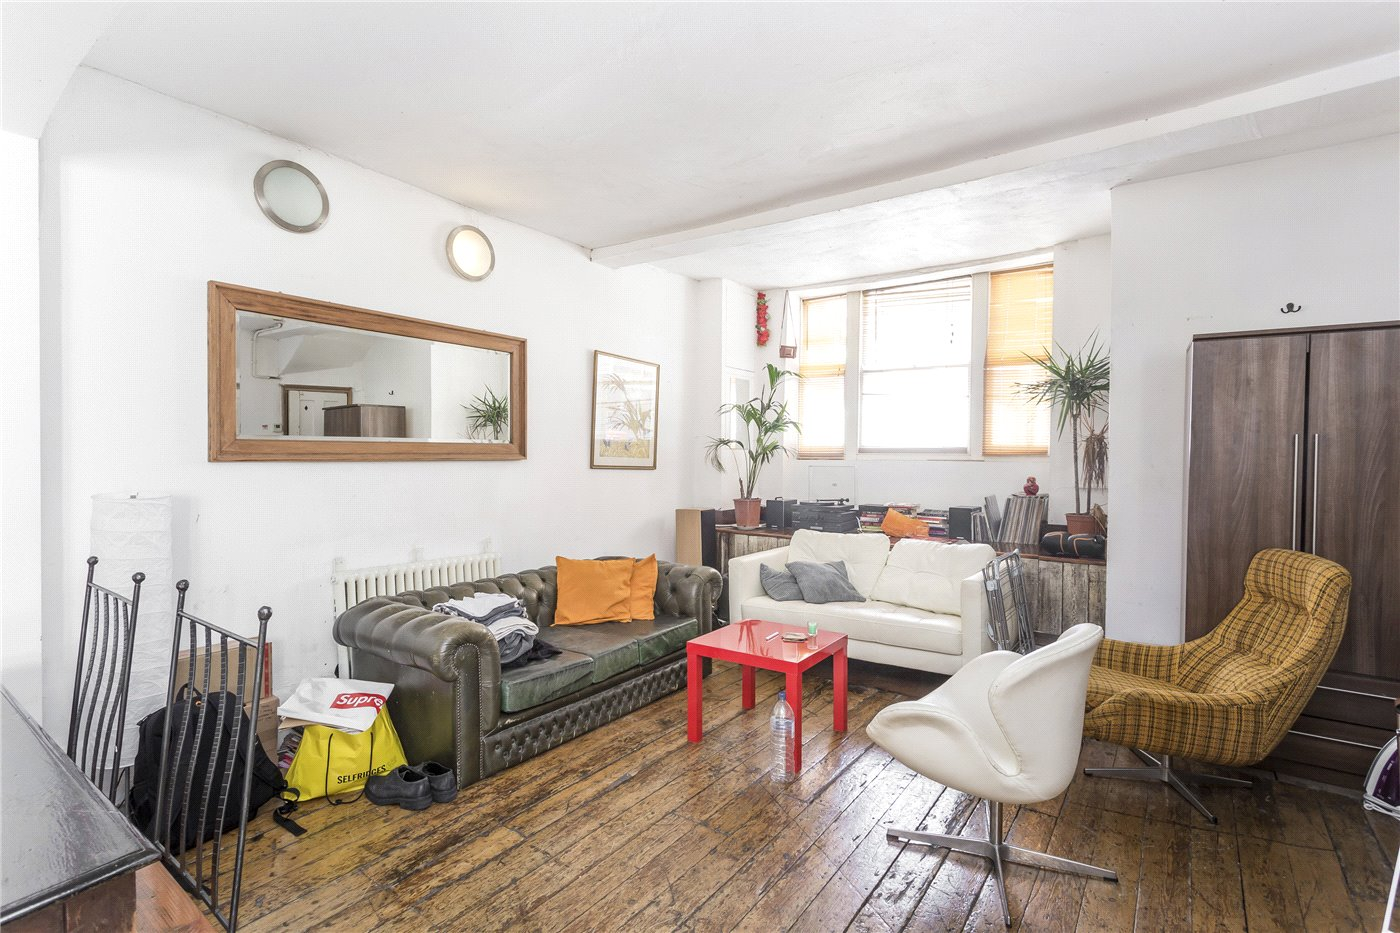 4 bedroom property to rent in Whitby Street, London, E1 - £825 pw